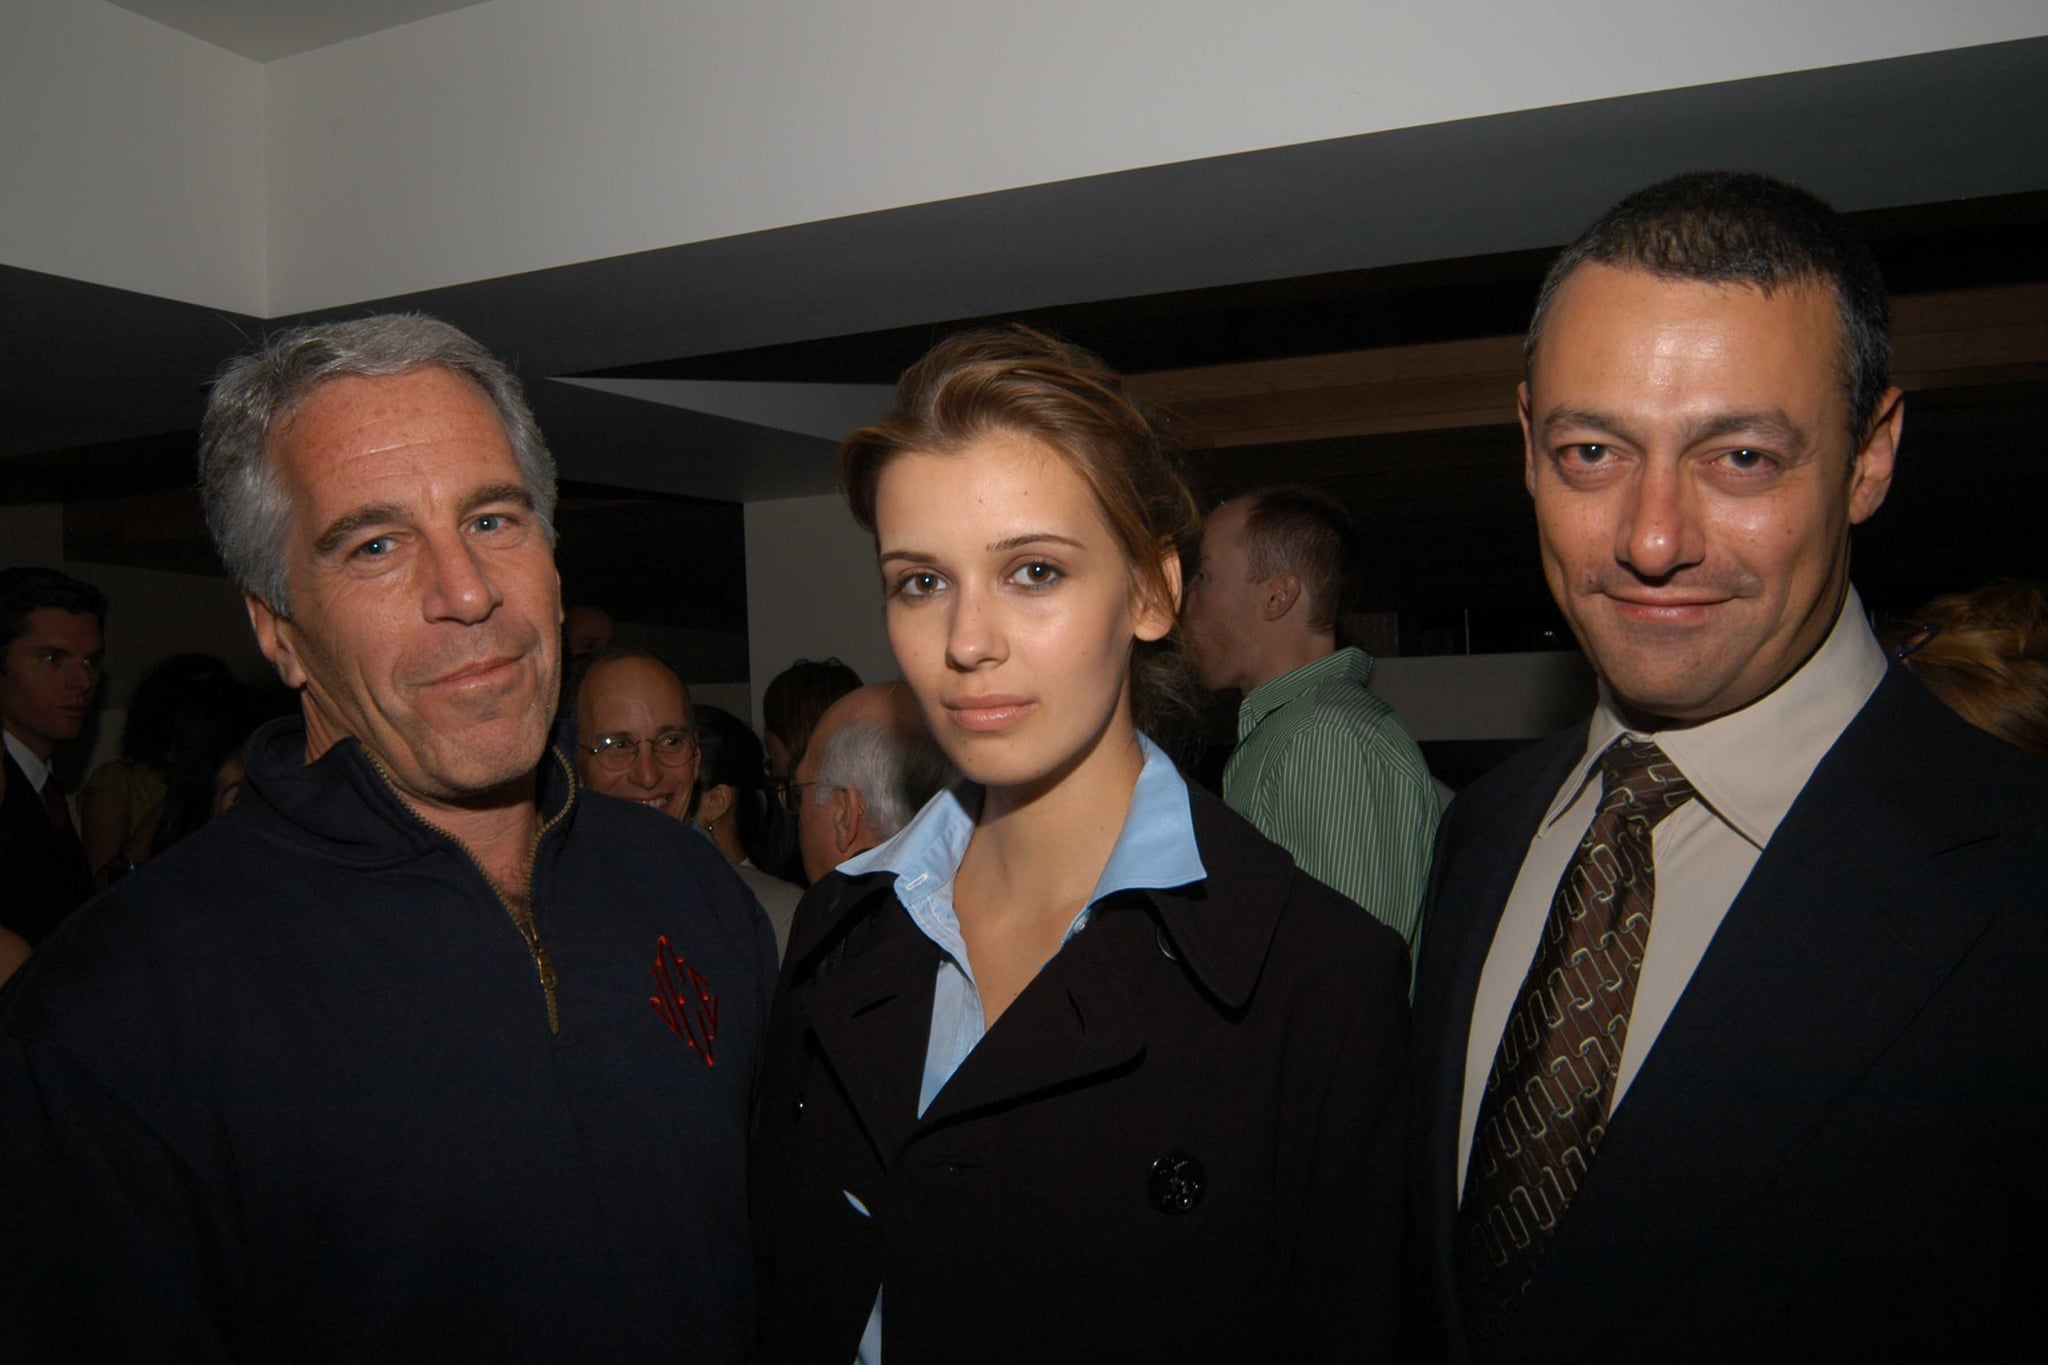 NEW YORK, NY - MAY 18: (L-R) Jeffrey Epstein, Adriana and Maer Roshan attend Launch of RADAR MAGAZINE at Hotel QT on May 18, 2005. (Photo by Neil Rasmus/Patrick McMullan via Getty Images)